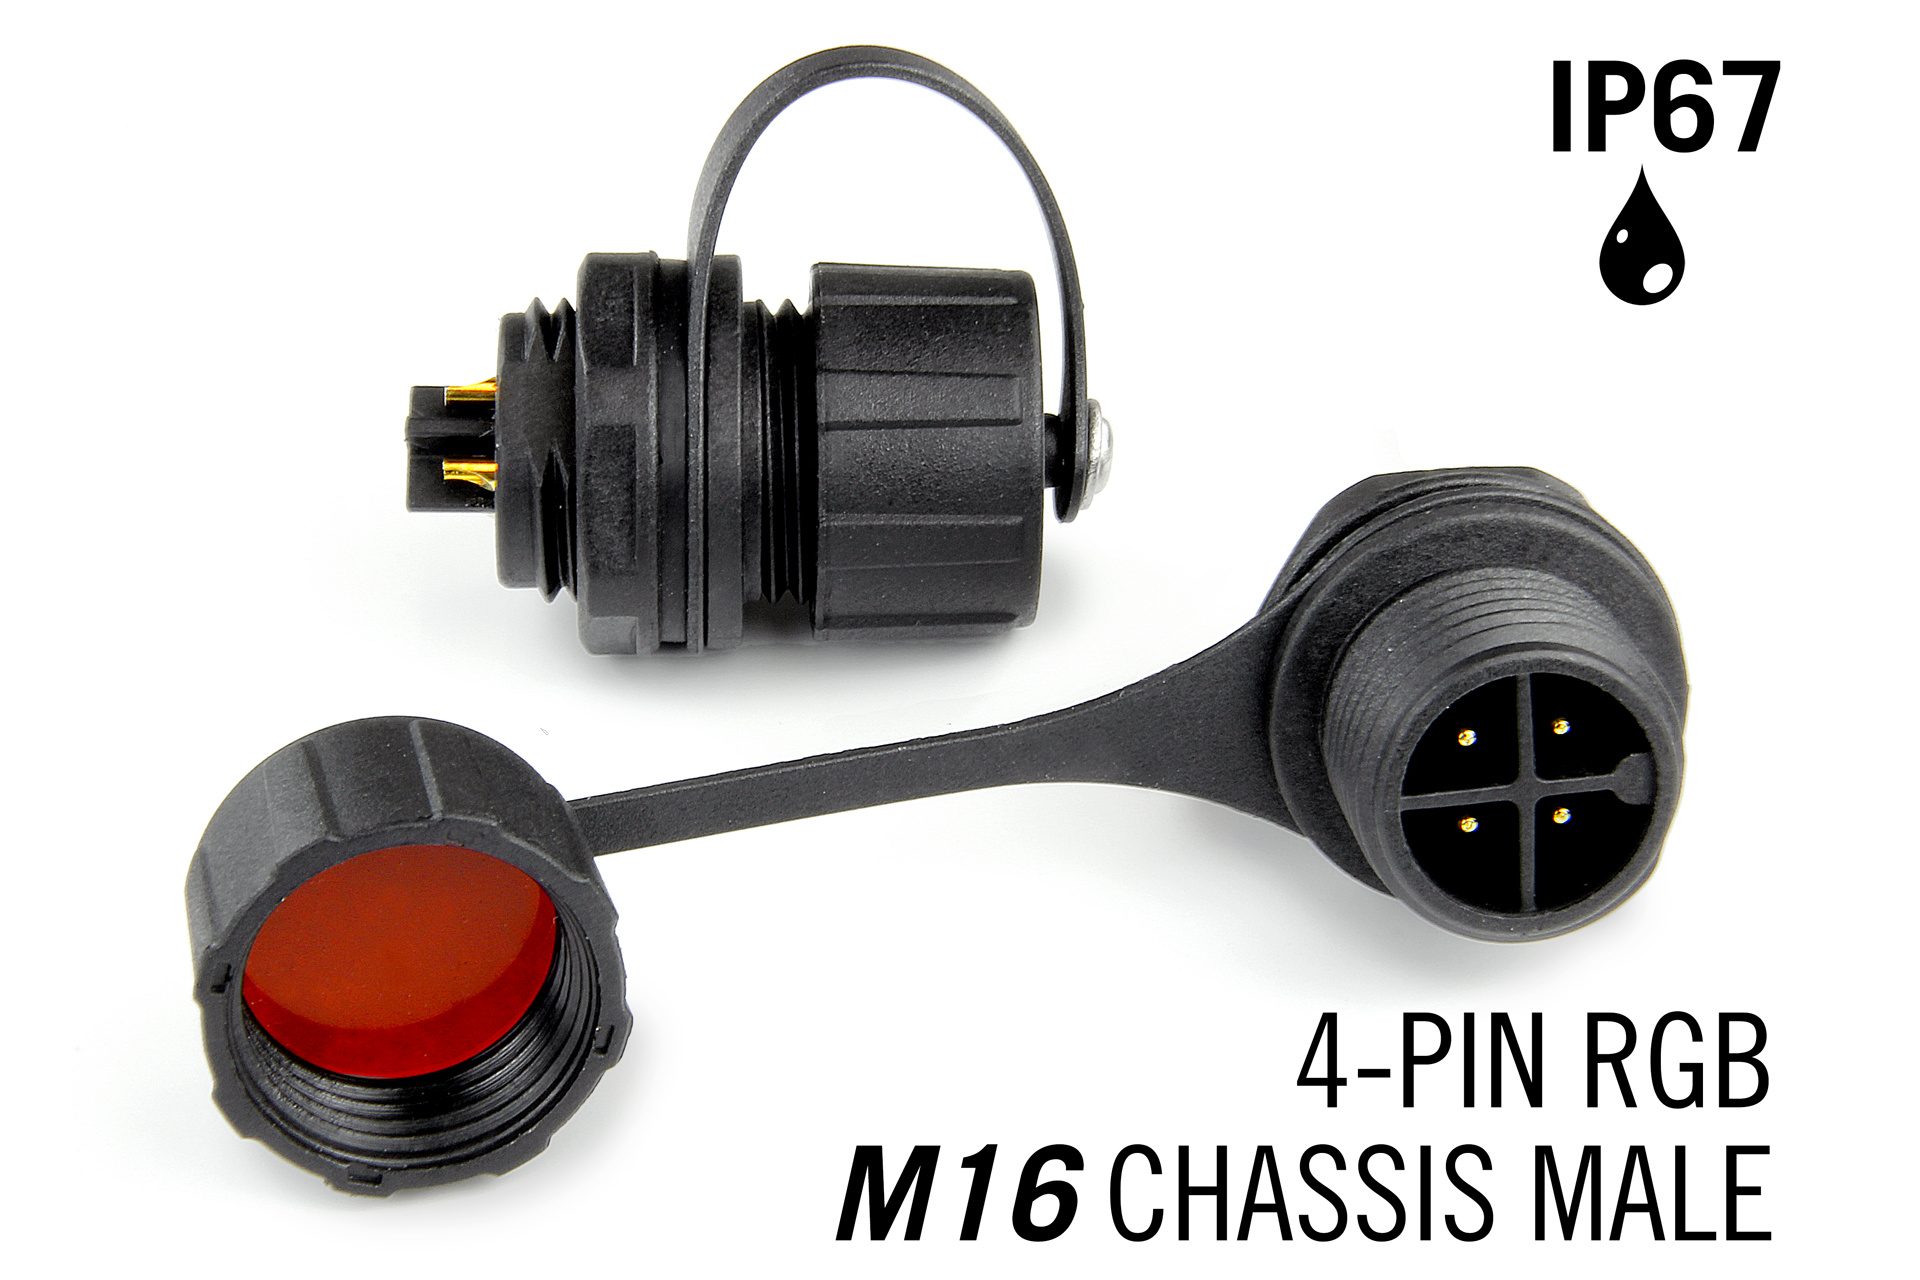 M16 4 Pin Male Chassis Connector IP67 Waterdichte RGB